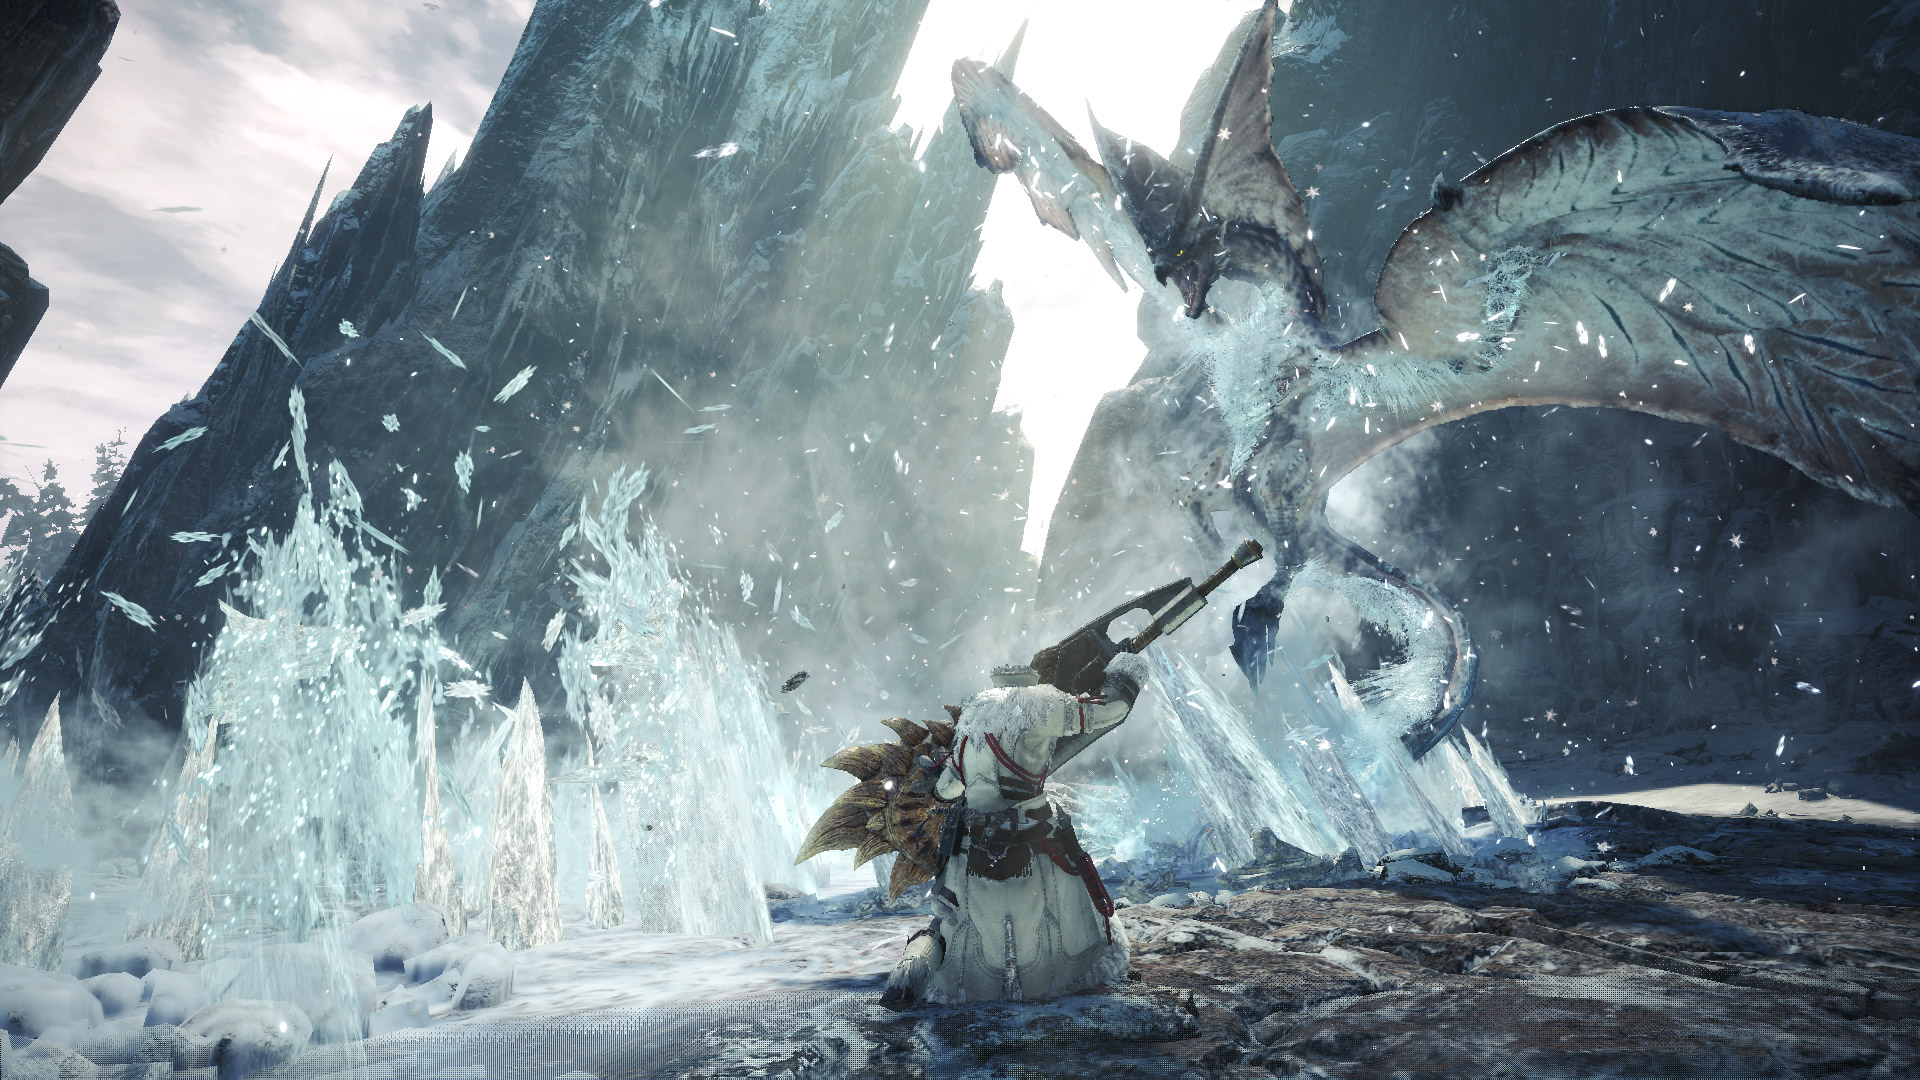 Iceborne shows new monsters and narrative in new Story Trailer